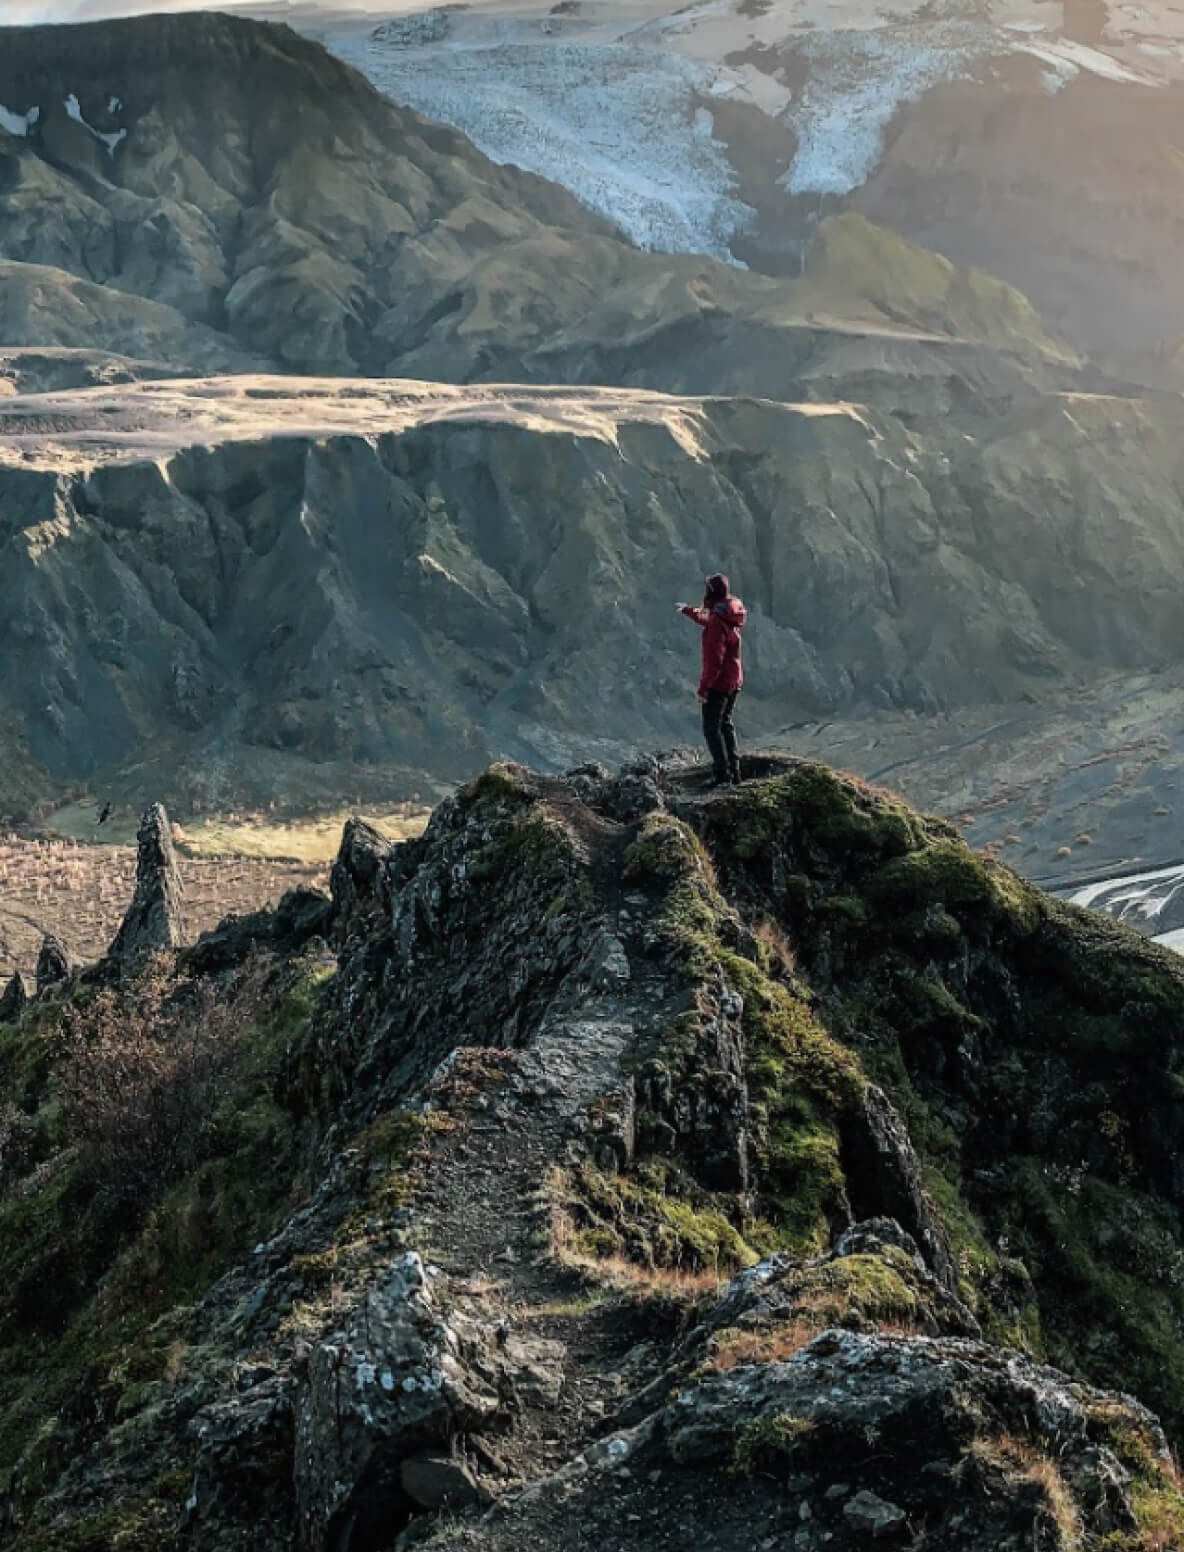 The hiking trails in Iceland will take you through different seasons and diverse landscapes.